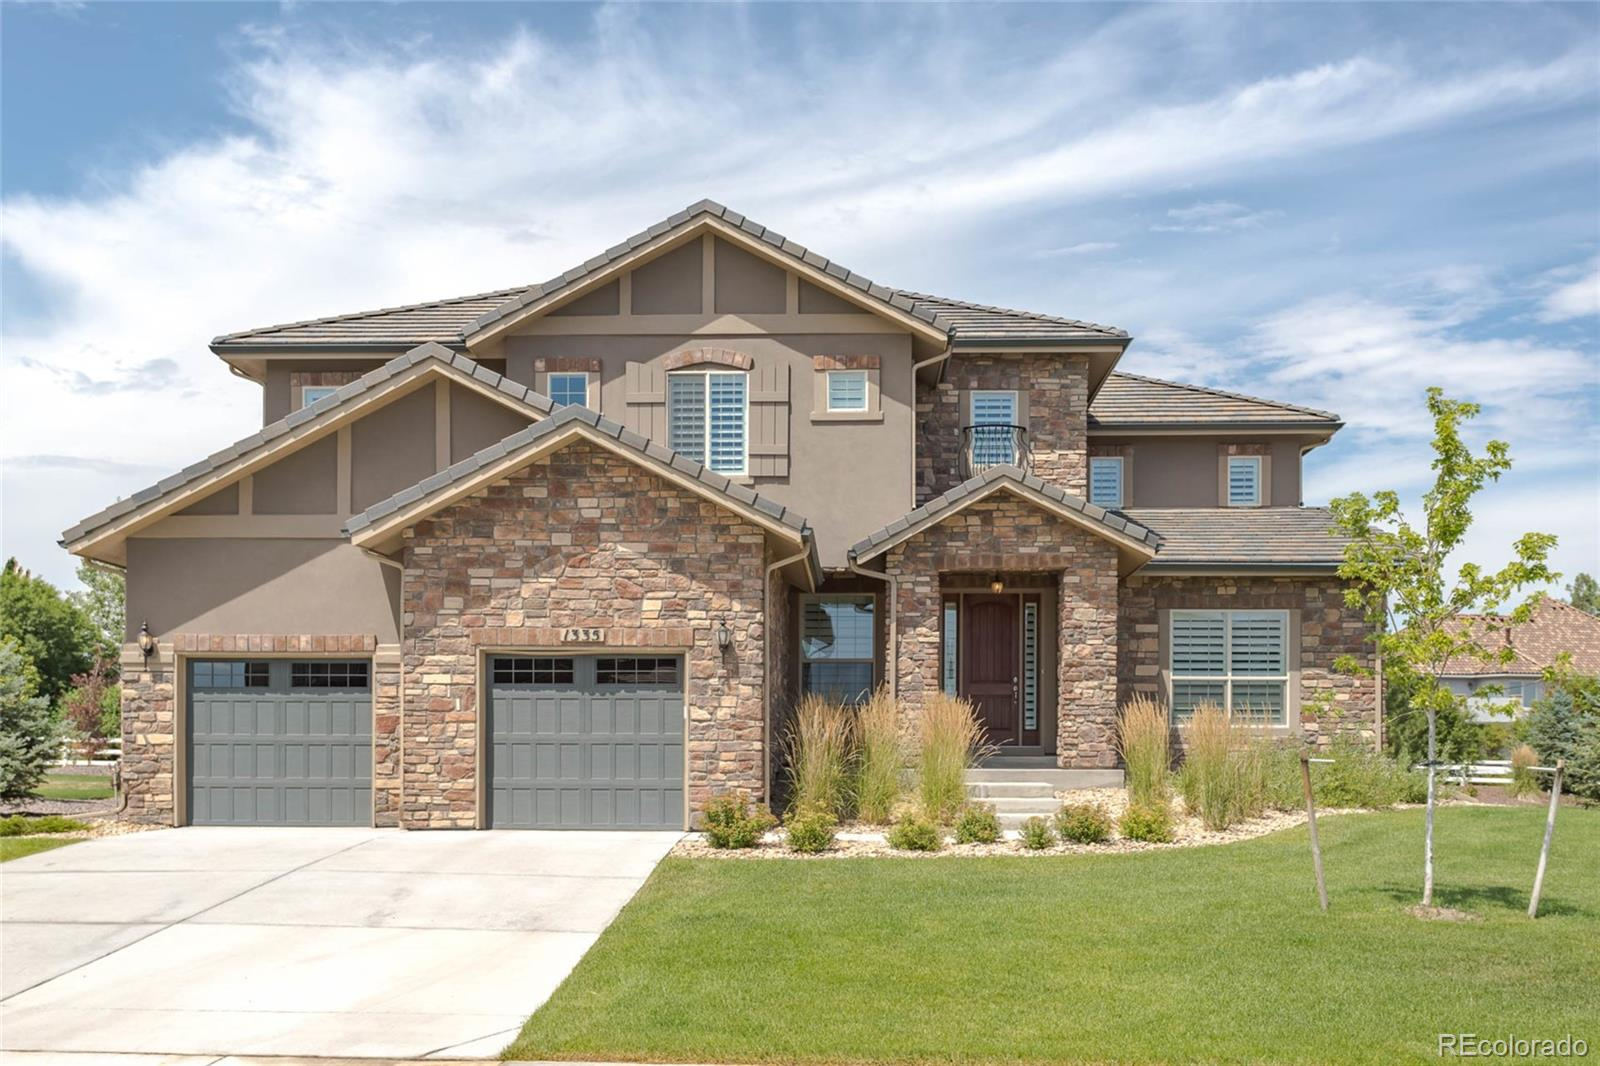 1335 Eversole Drive, Broomfield, CO 80023 - Broomfield, CO real estate listing